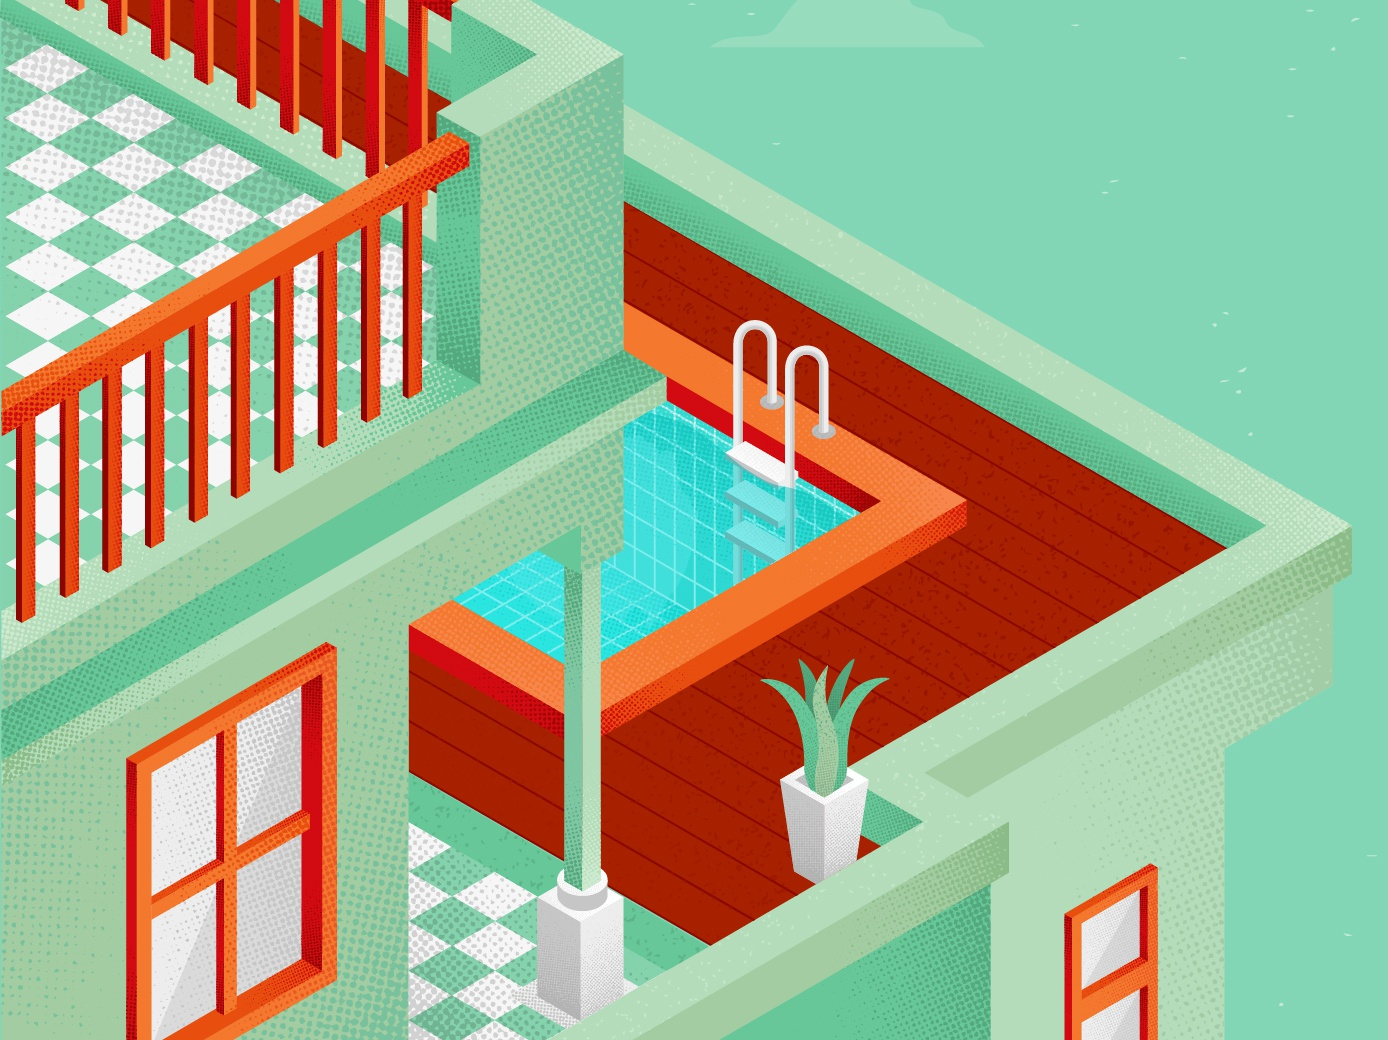 Isometric design vector isometric isometric illustration isometric design illustration